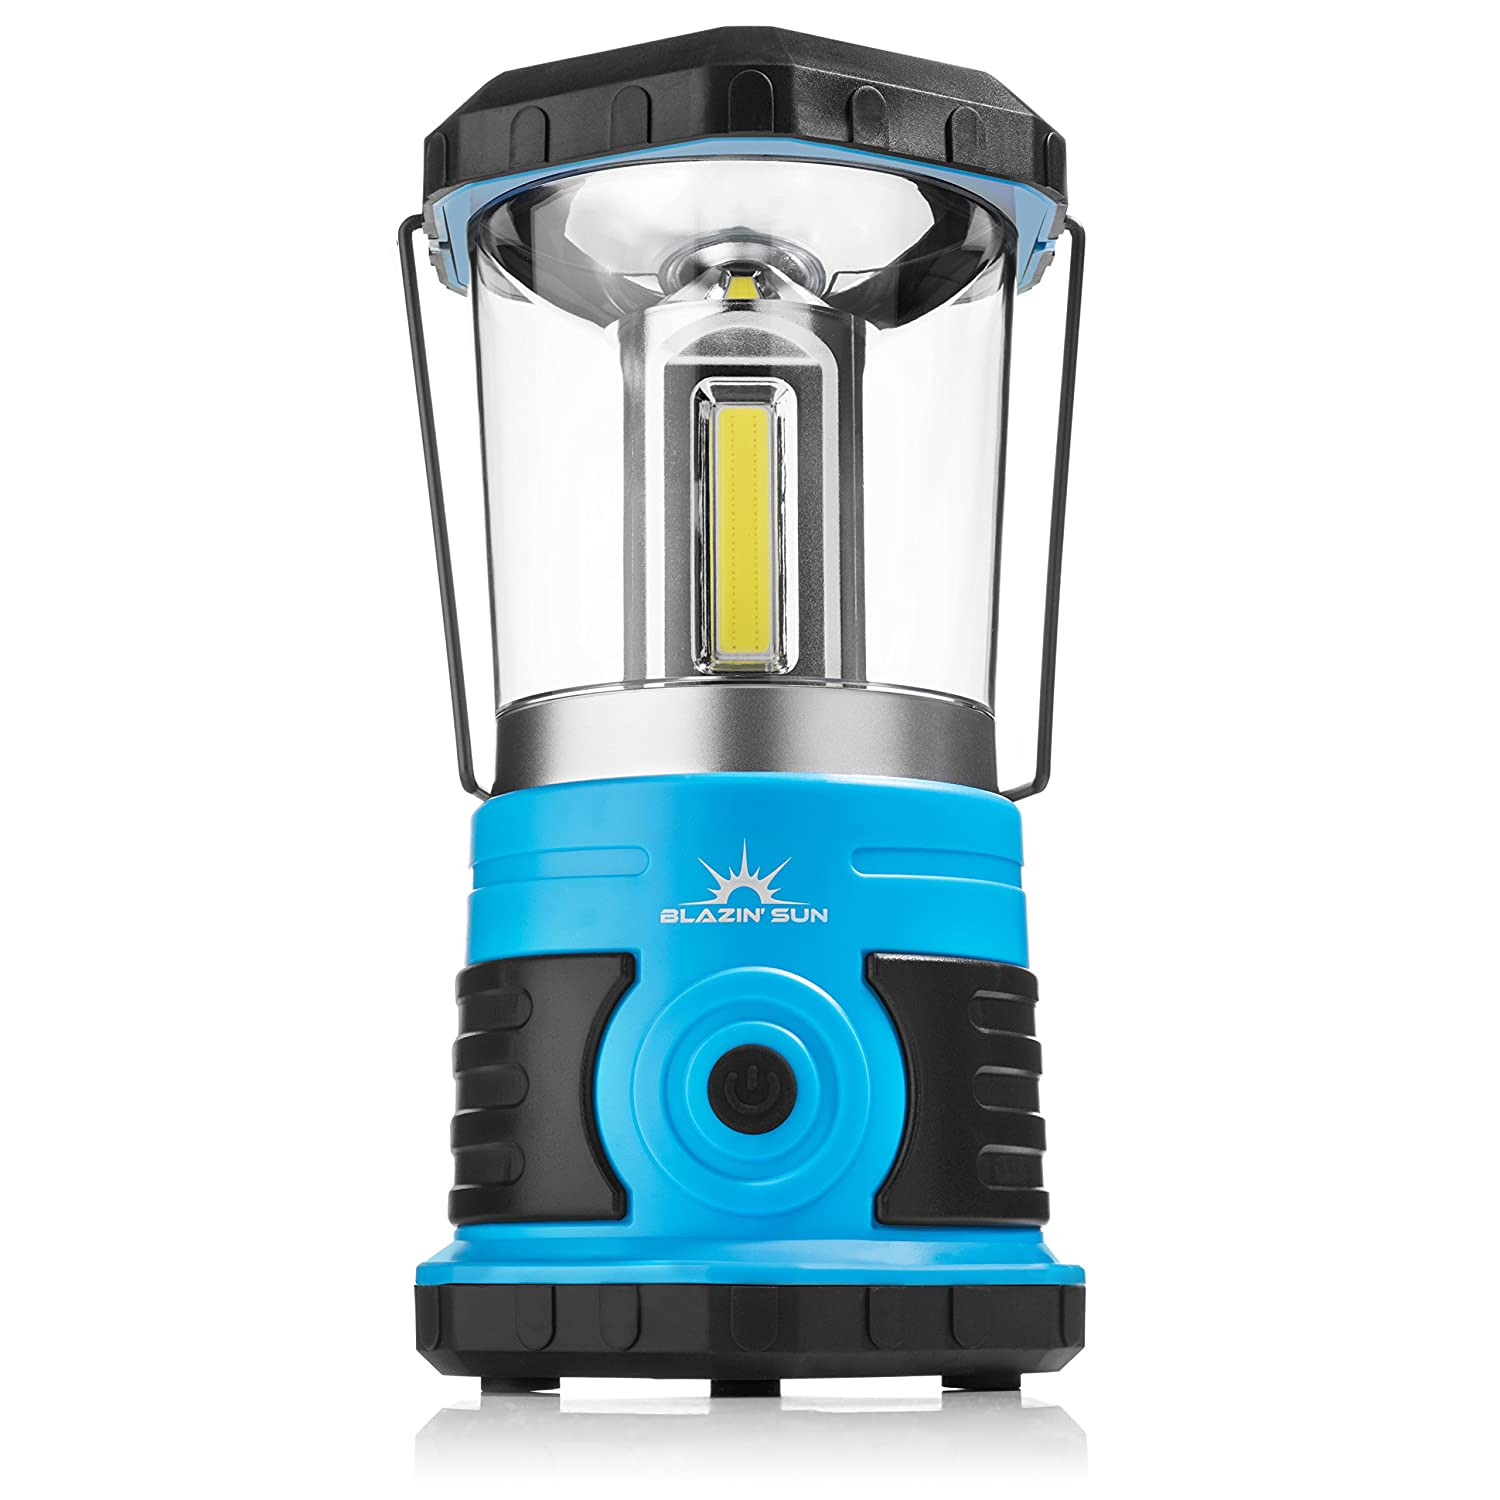 Blazin' Sun 800 | Brightest Lanterns Battery Powered LED Camping and Emergency | Hurricane, Storm and Power Outages (Blue)